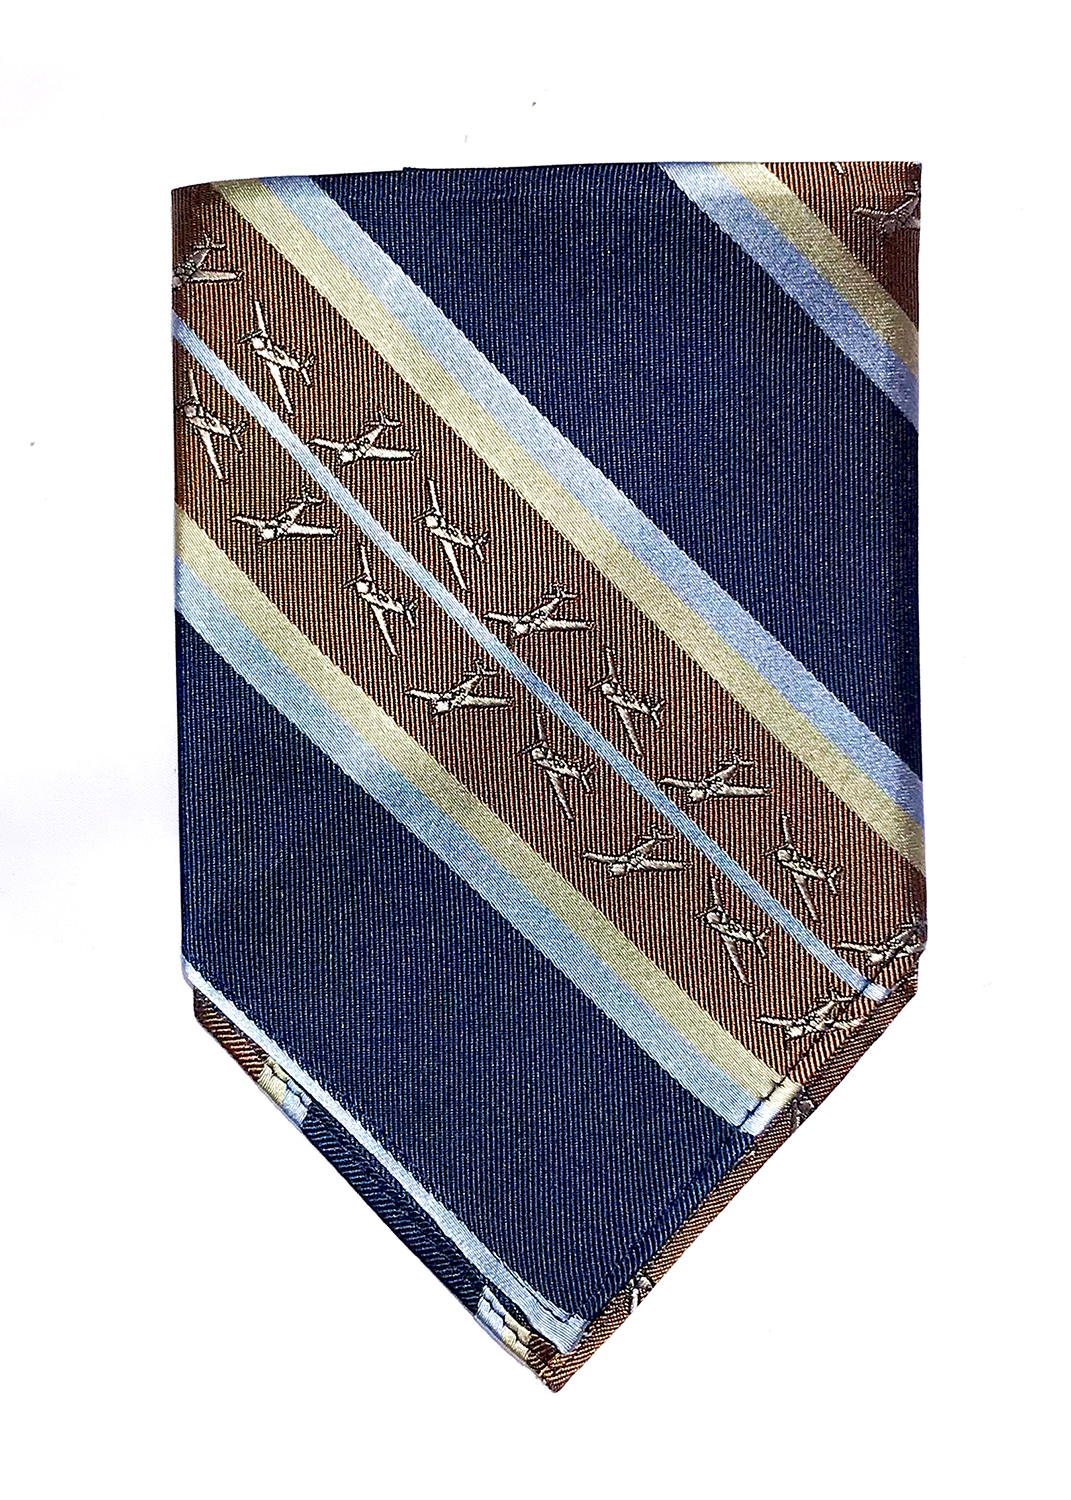 doppeldecker design aviation aircraft airplane pocket square mooney